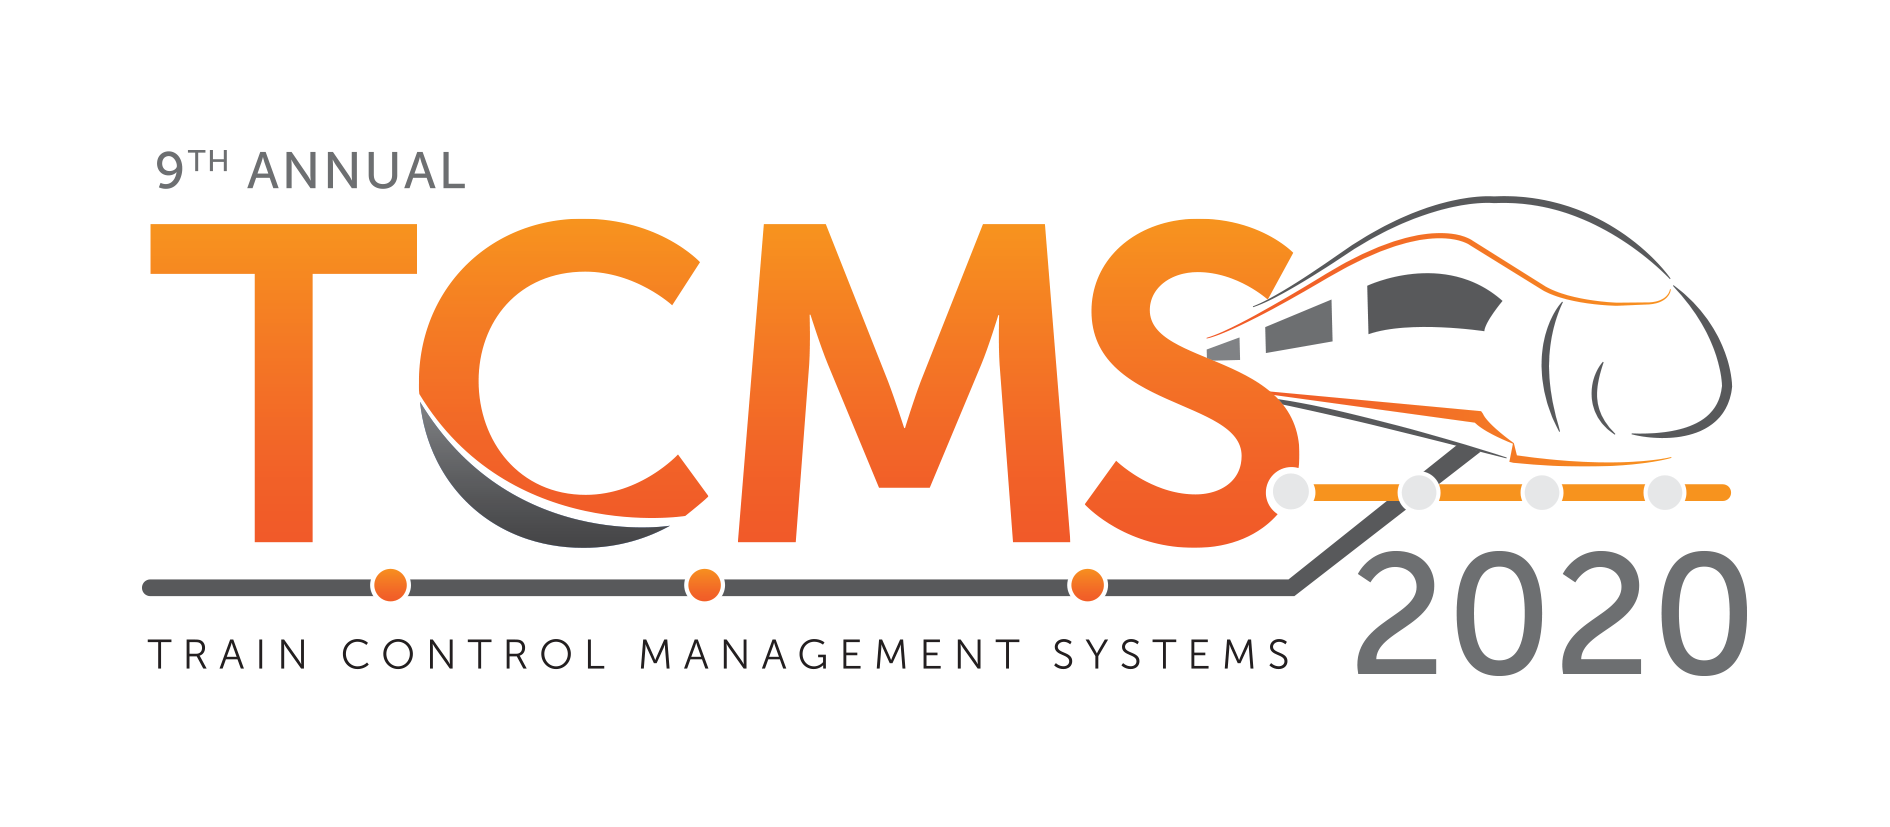 Train Control Management Systems 2020